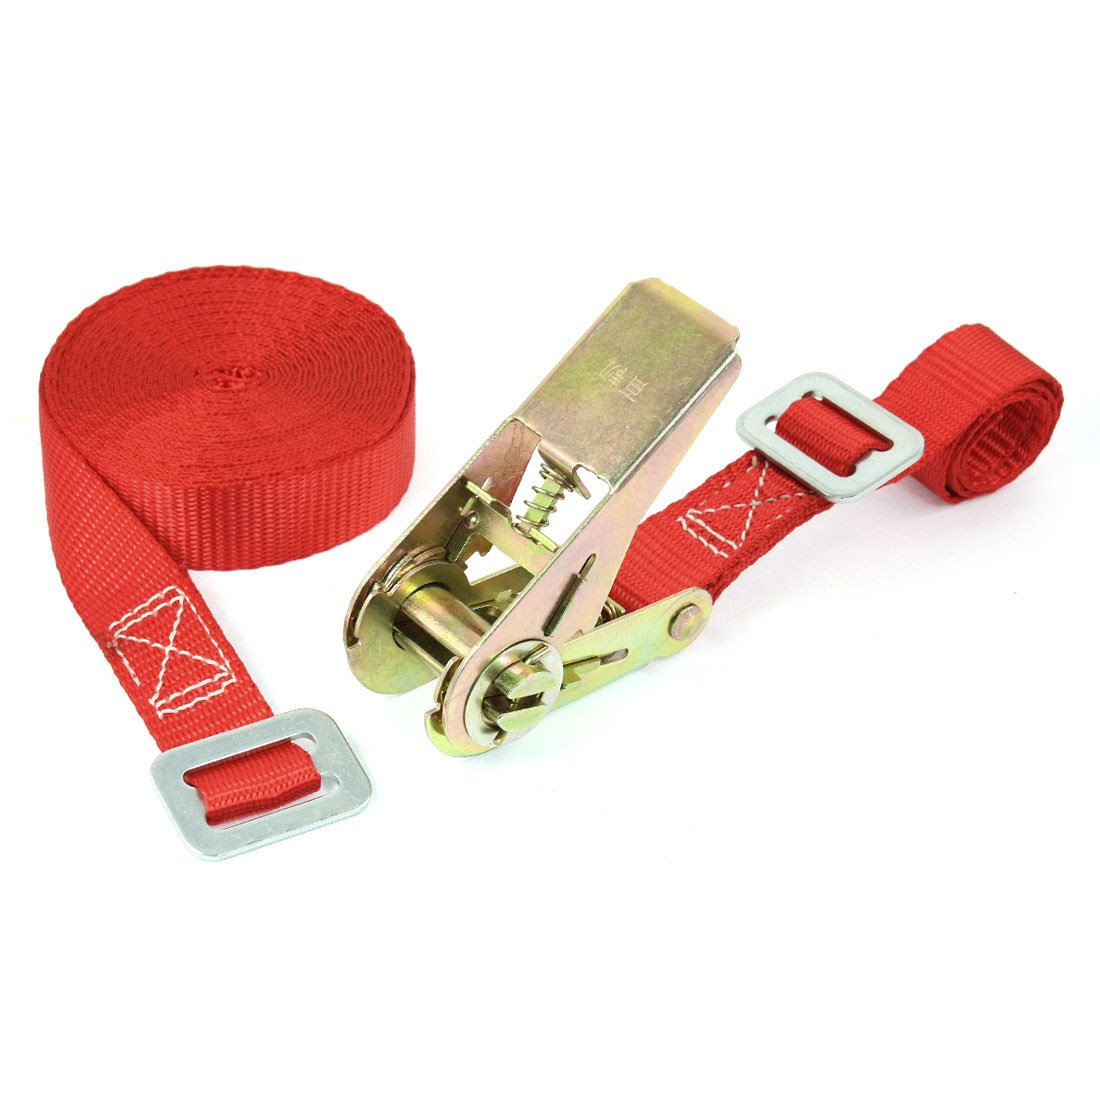 Travel Luggage Binding Adjustable Metal Ratchet Tie Down Strap 5M 16ft Red